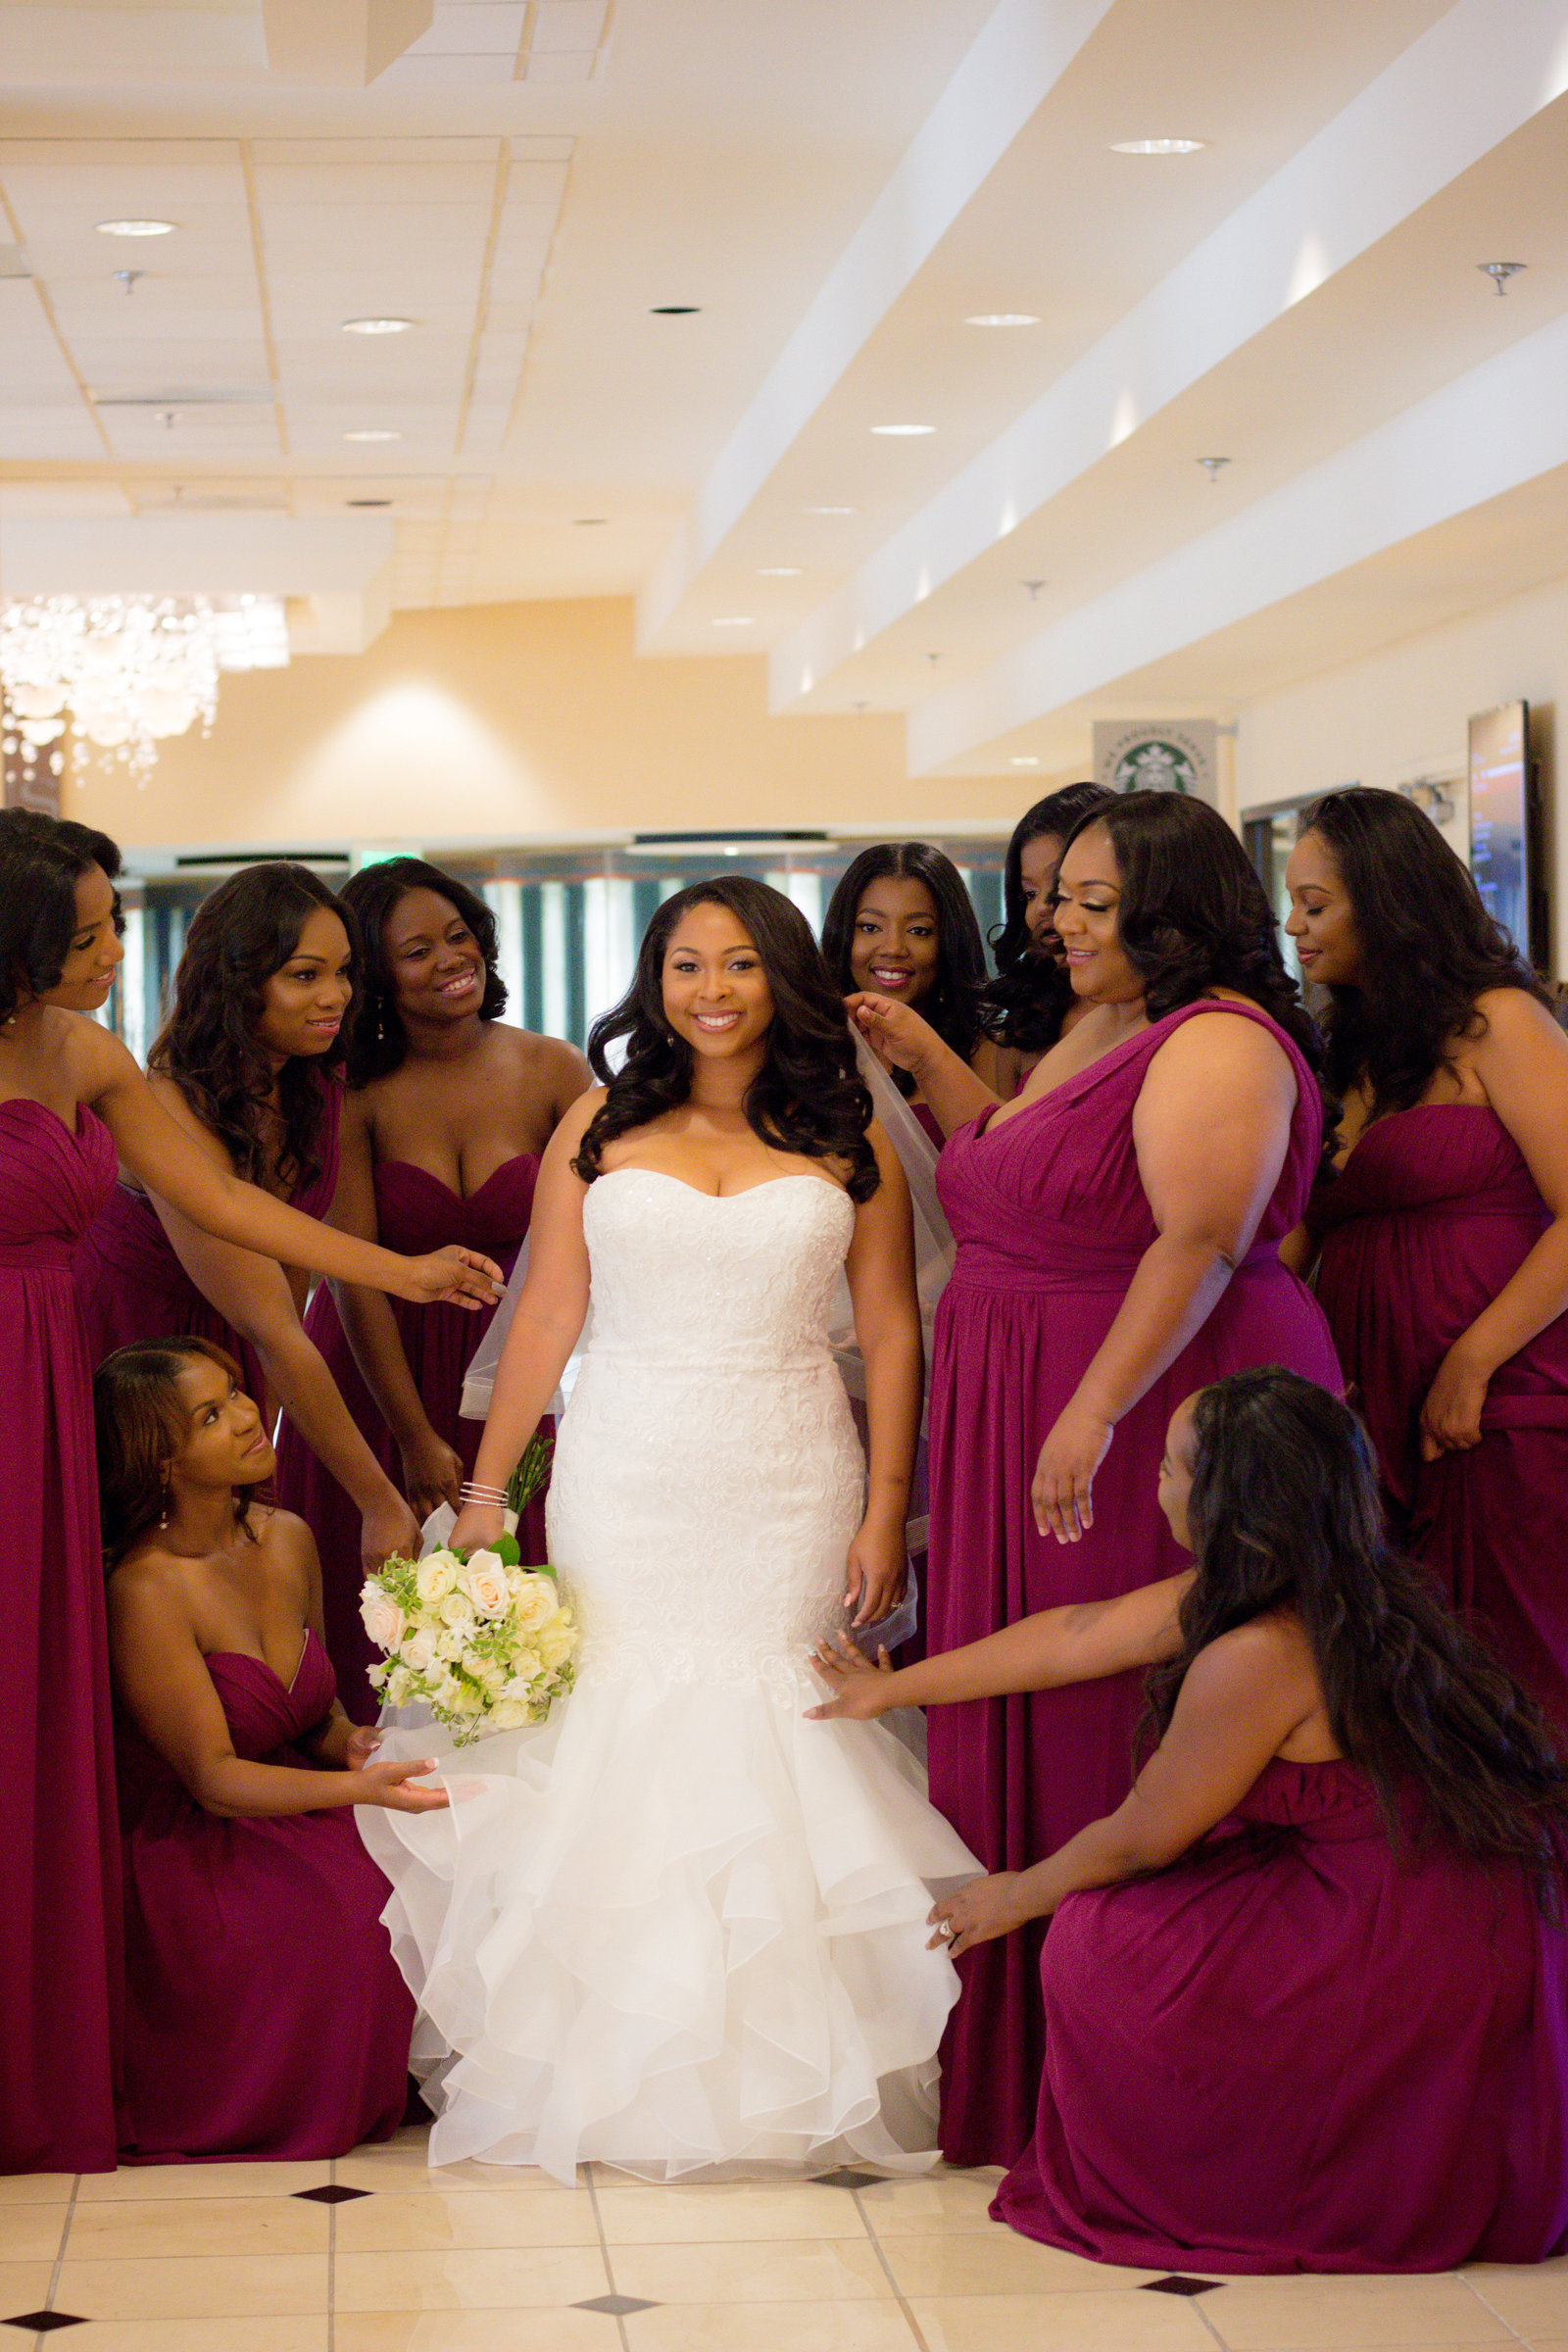 Nashville Wedding Photography | Bridesmaids Photo Ideas